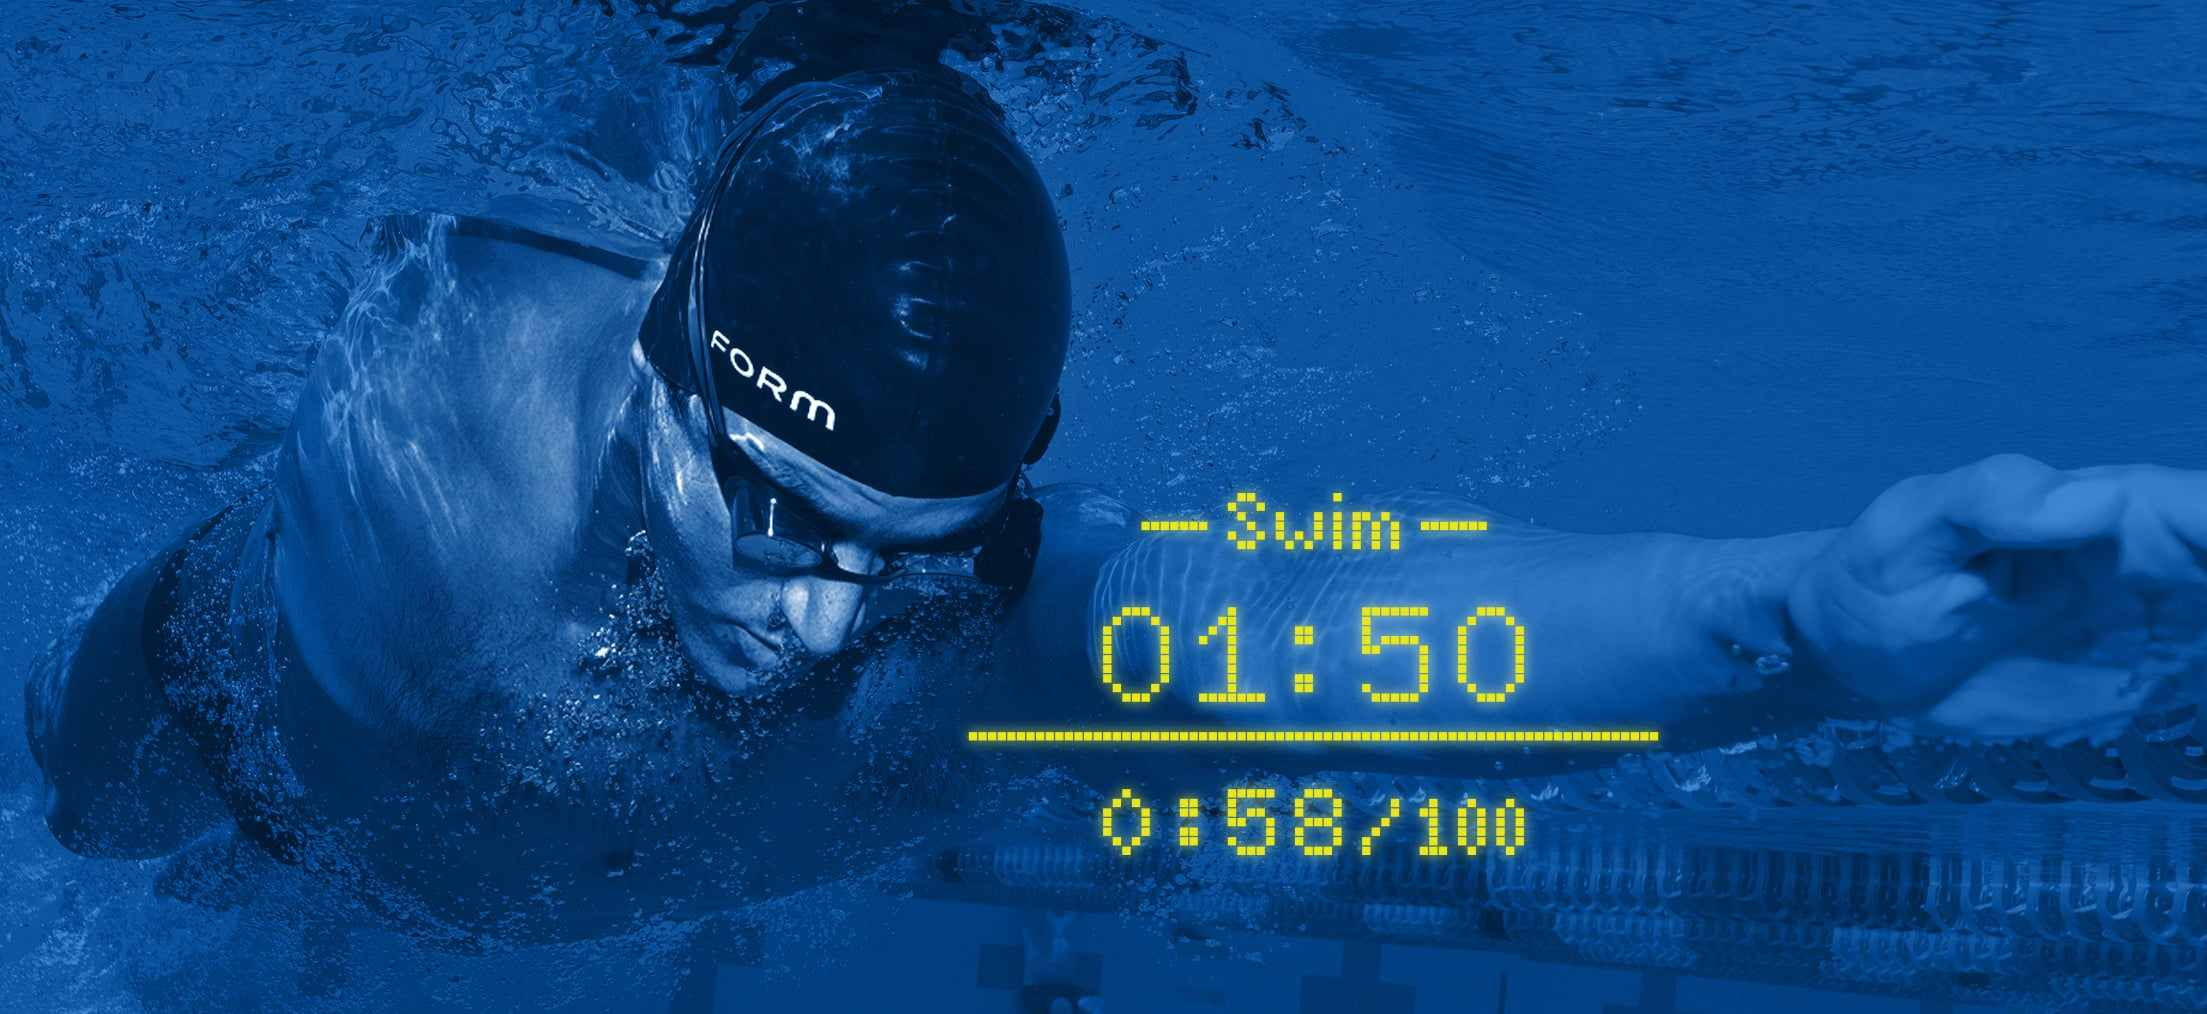 Make the most of seeing your metrics during your swim with FORM swim goggles.